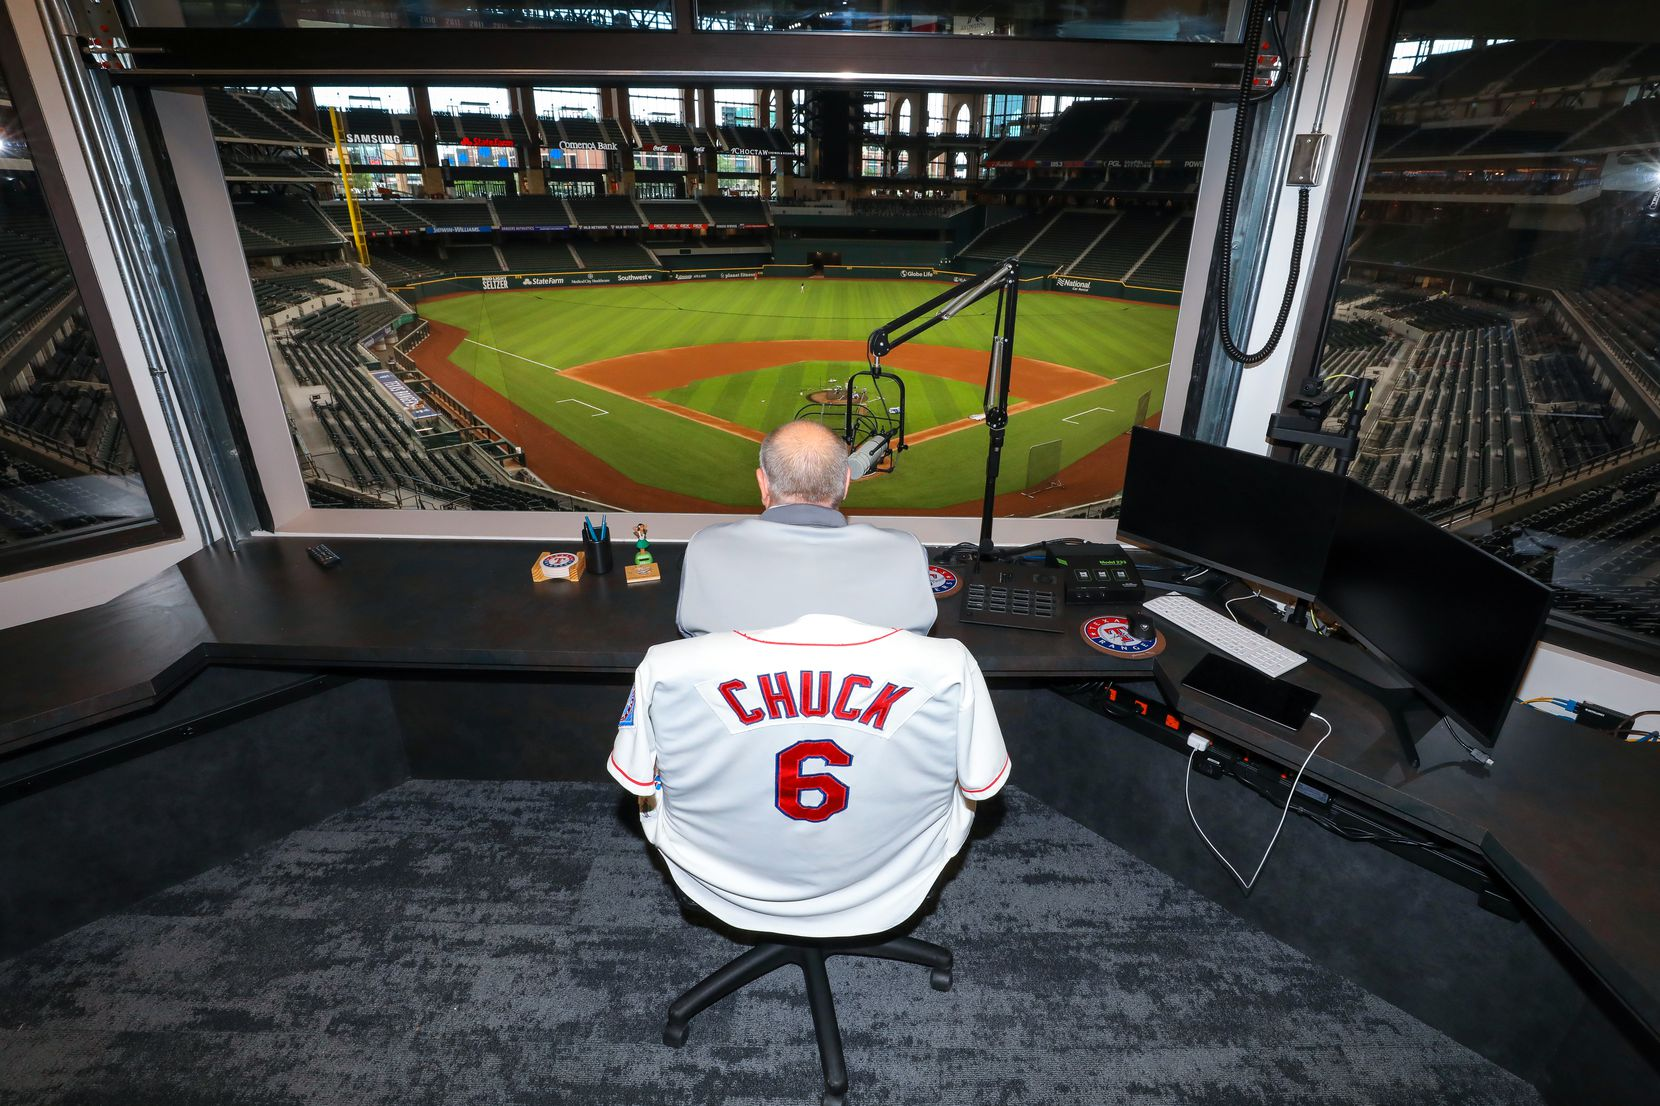 ARLINGTON, TX - MAY 27:  Chuck Morgan, the public address announcer for the Texas Rangers sits in his booth at Globe Life Field on Wednesday, May 27, 2020 in Arlington, Texas.